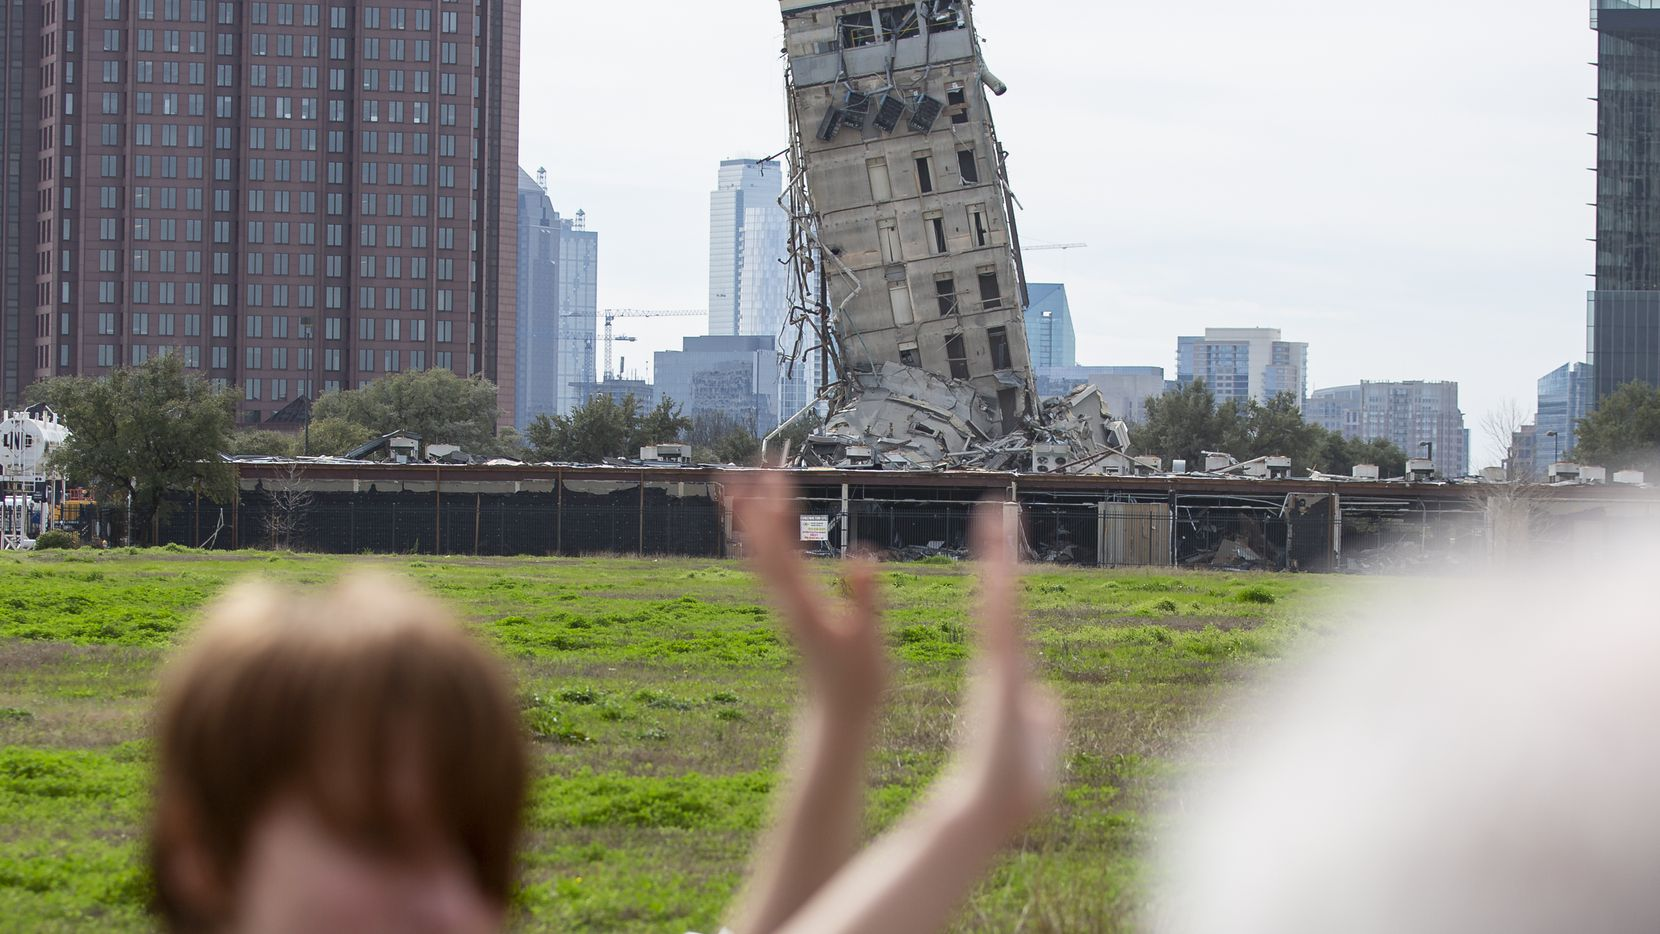 Randy Gibson takes a photo of his son Andrew, 11, in front of the 'Leaning Tower of Dallas' on Feb. 17, 2020 in Dallas. A demolition of the former Affiliated Computer Services tower on Sunday morning left the central core behind. (Juan Figueroa/ The Dallas Morning News)